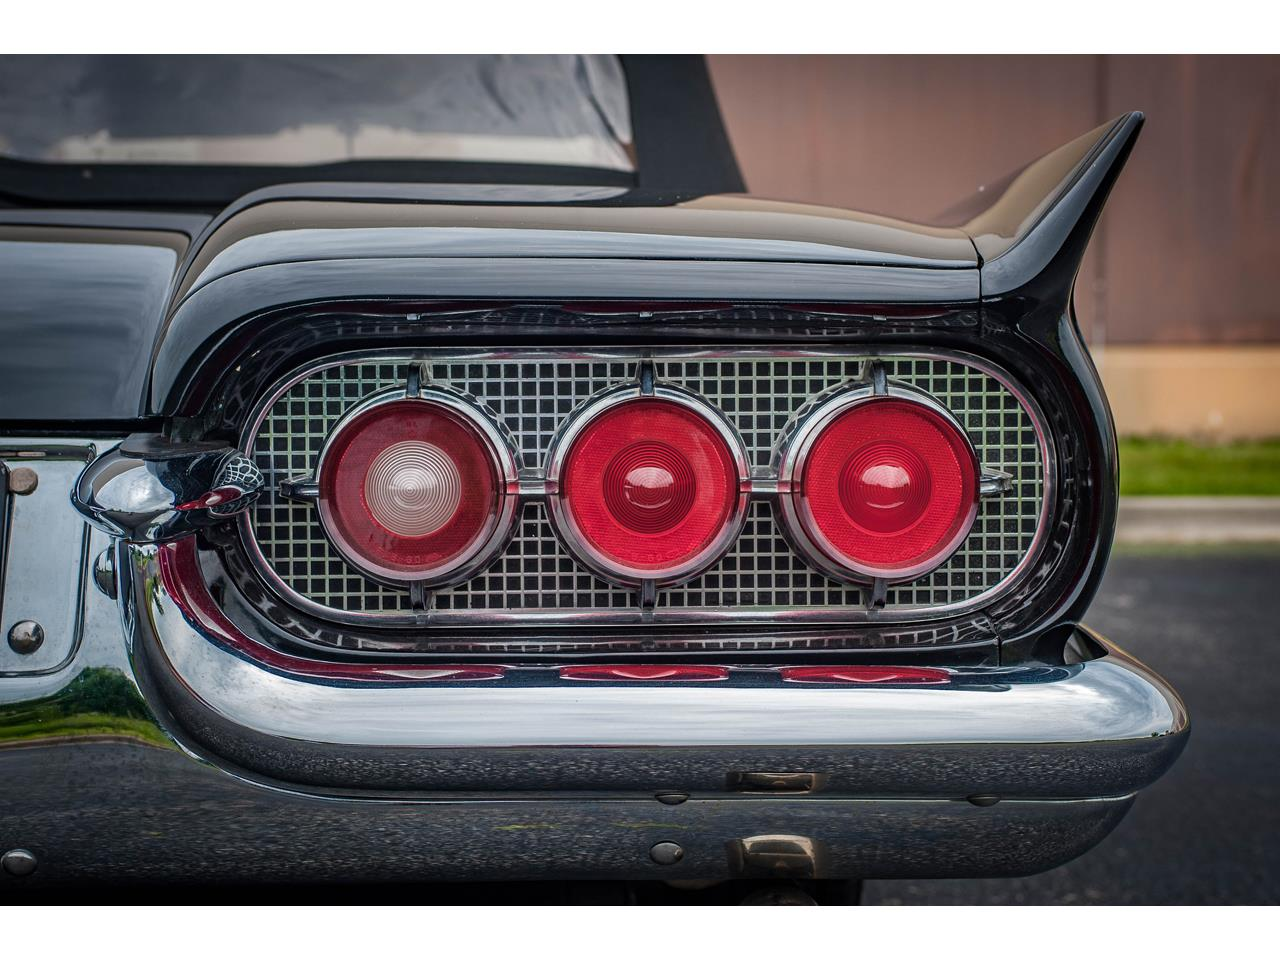 Large Picture of '60 Thunderbird located in O'Fallon Illinois - $40,500.00 Offered by Gateway Classic Cars - St. Louis - QB9W